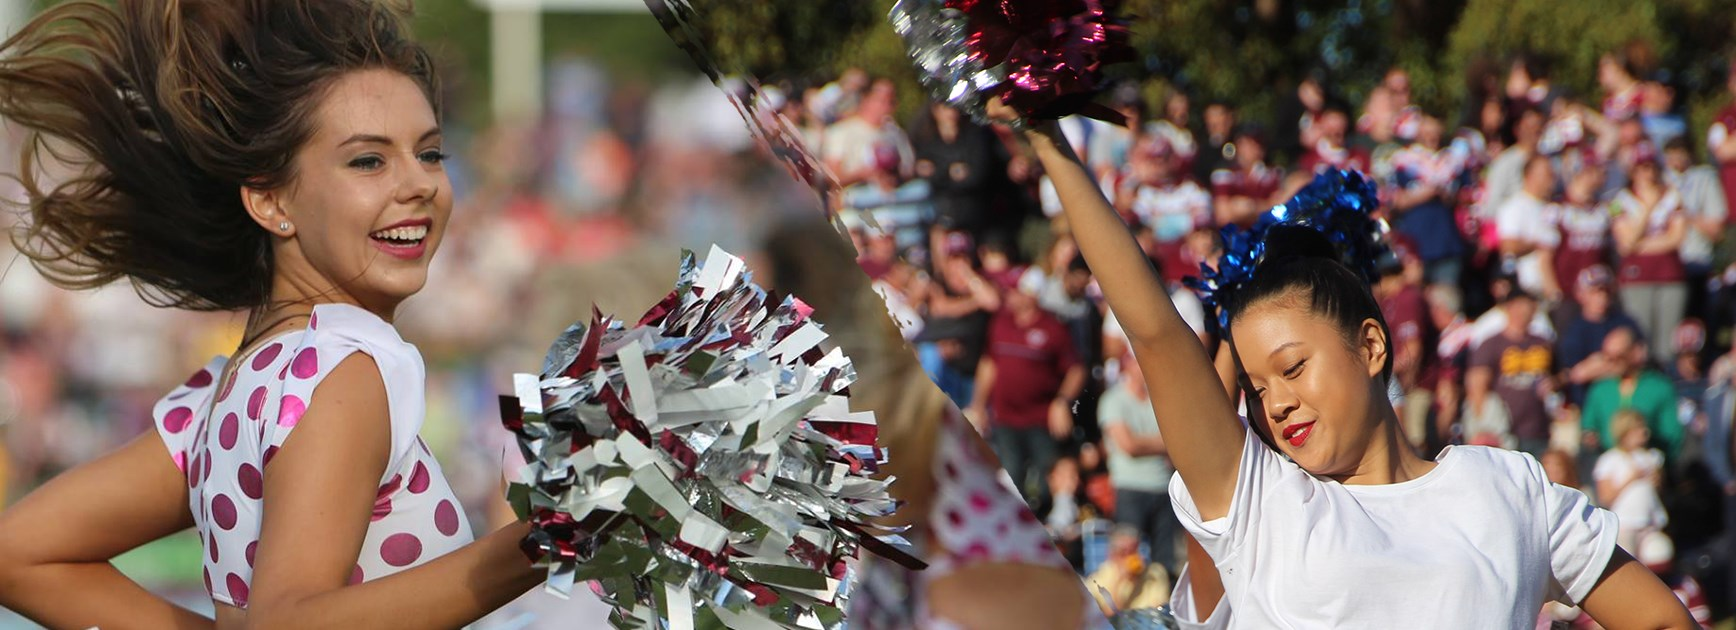 URM Cheer Experience set to light up Lottoland